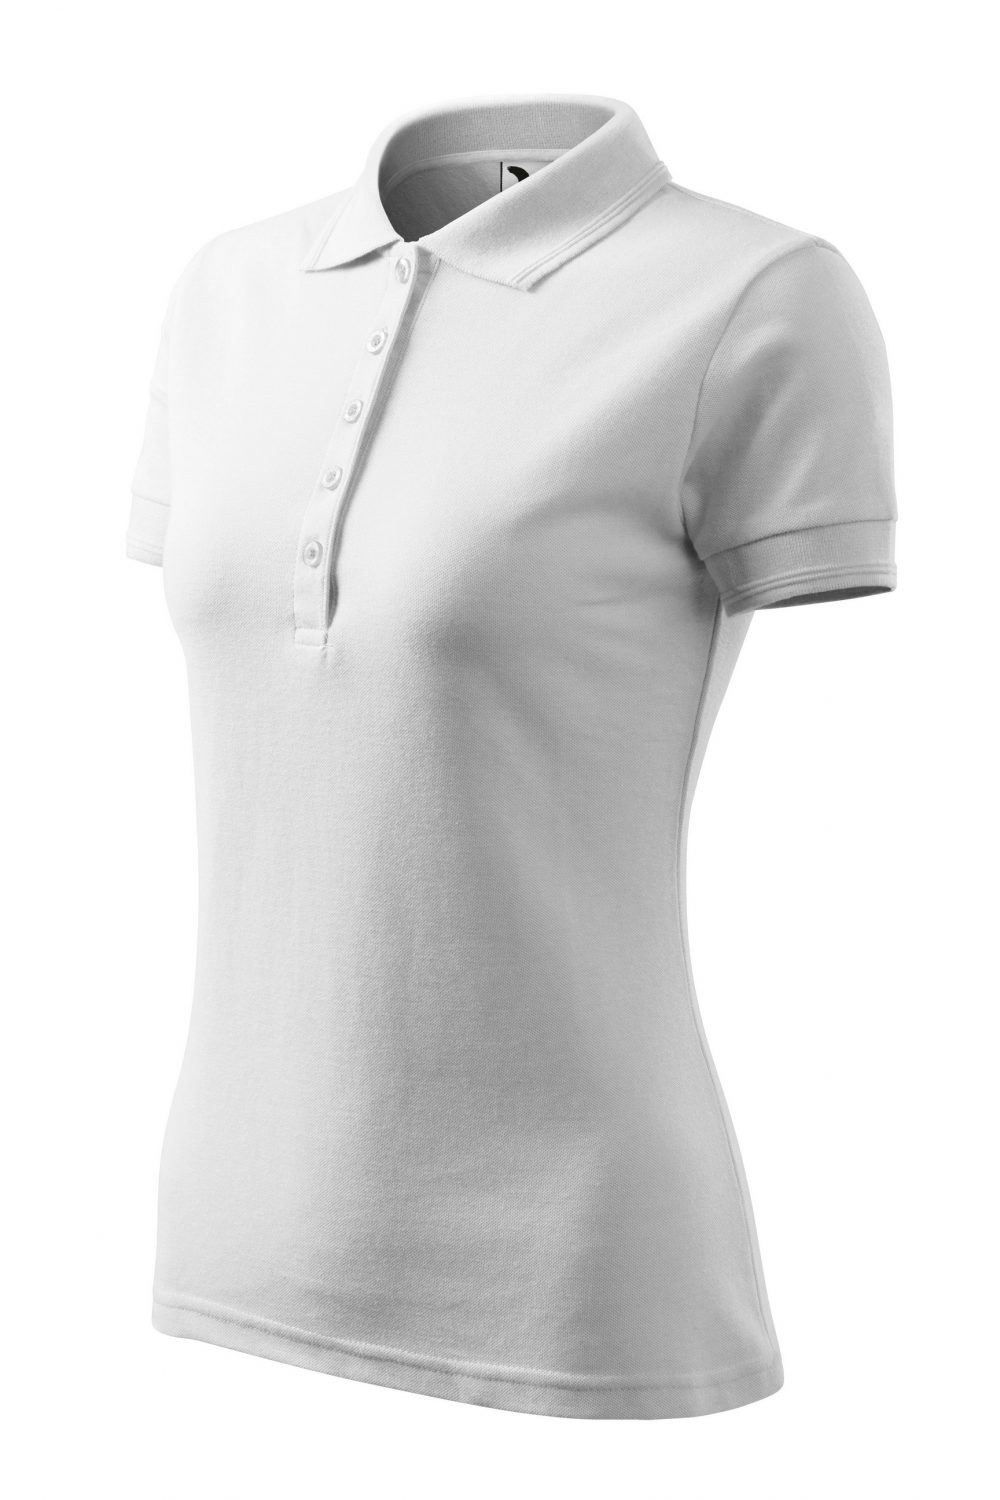 women's polo wellness, spa, hairdressers, medical clothes